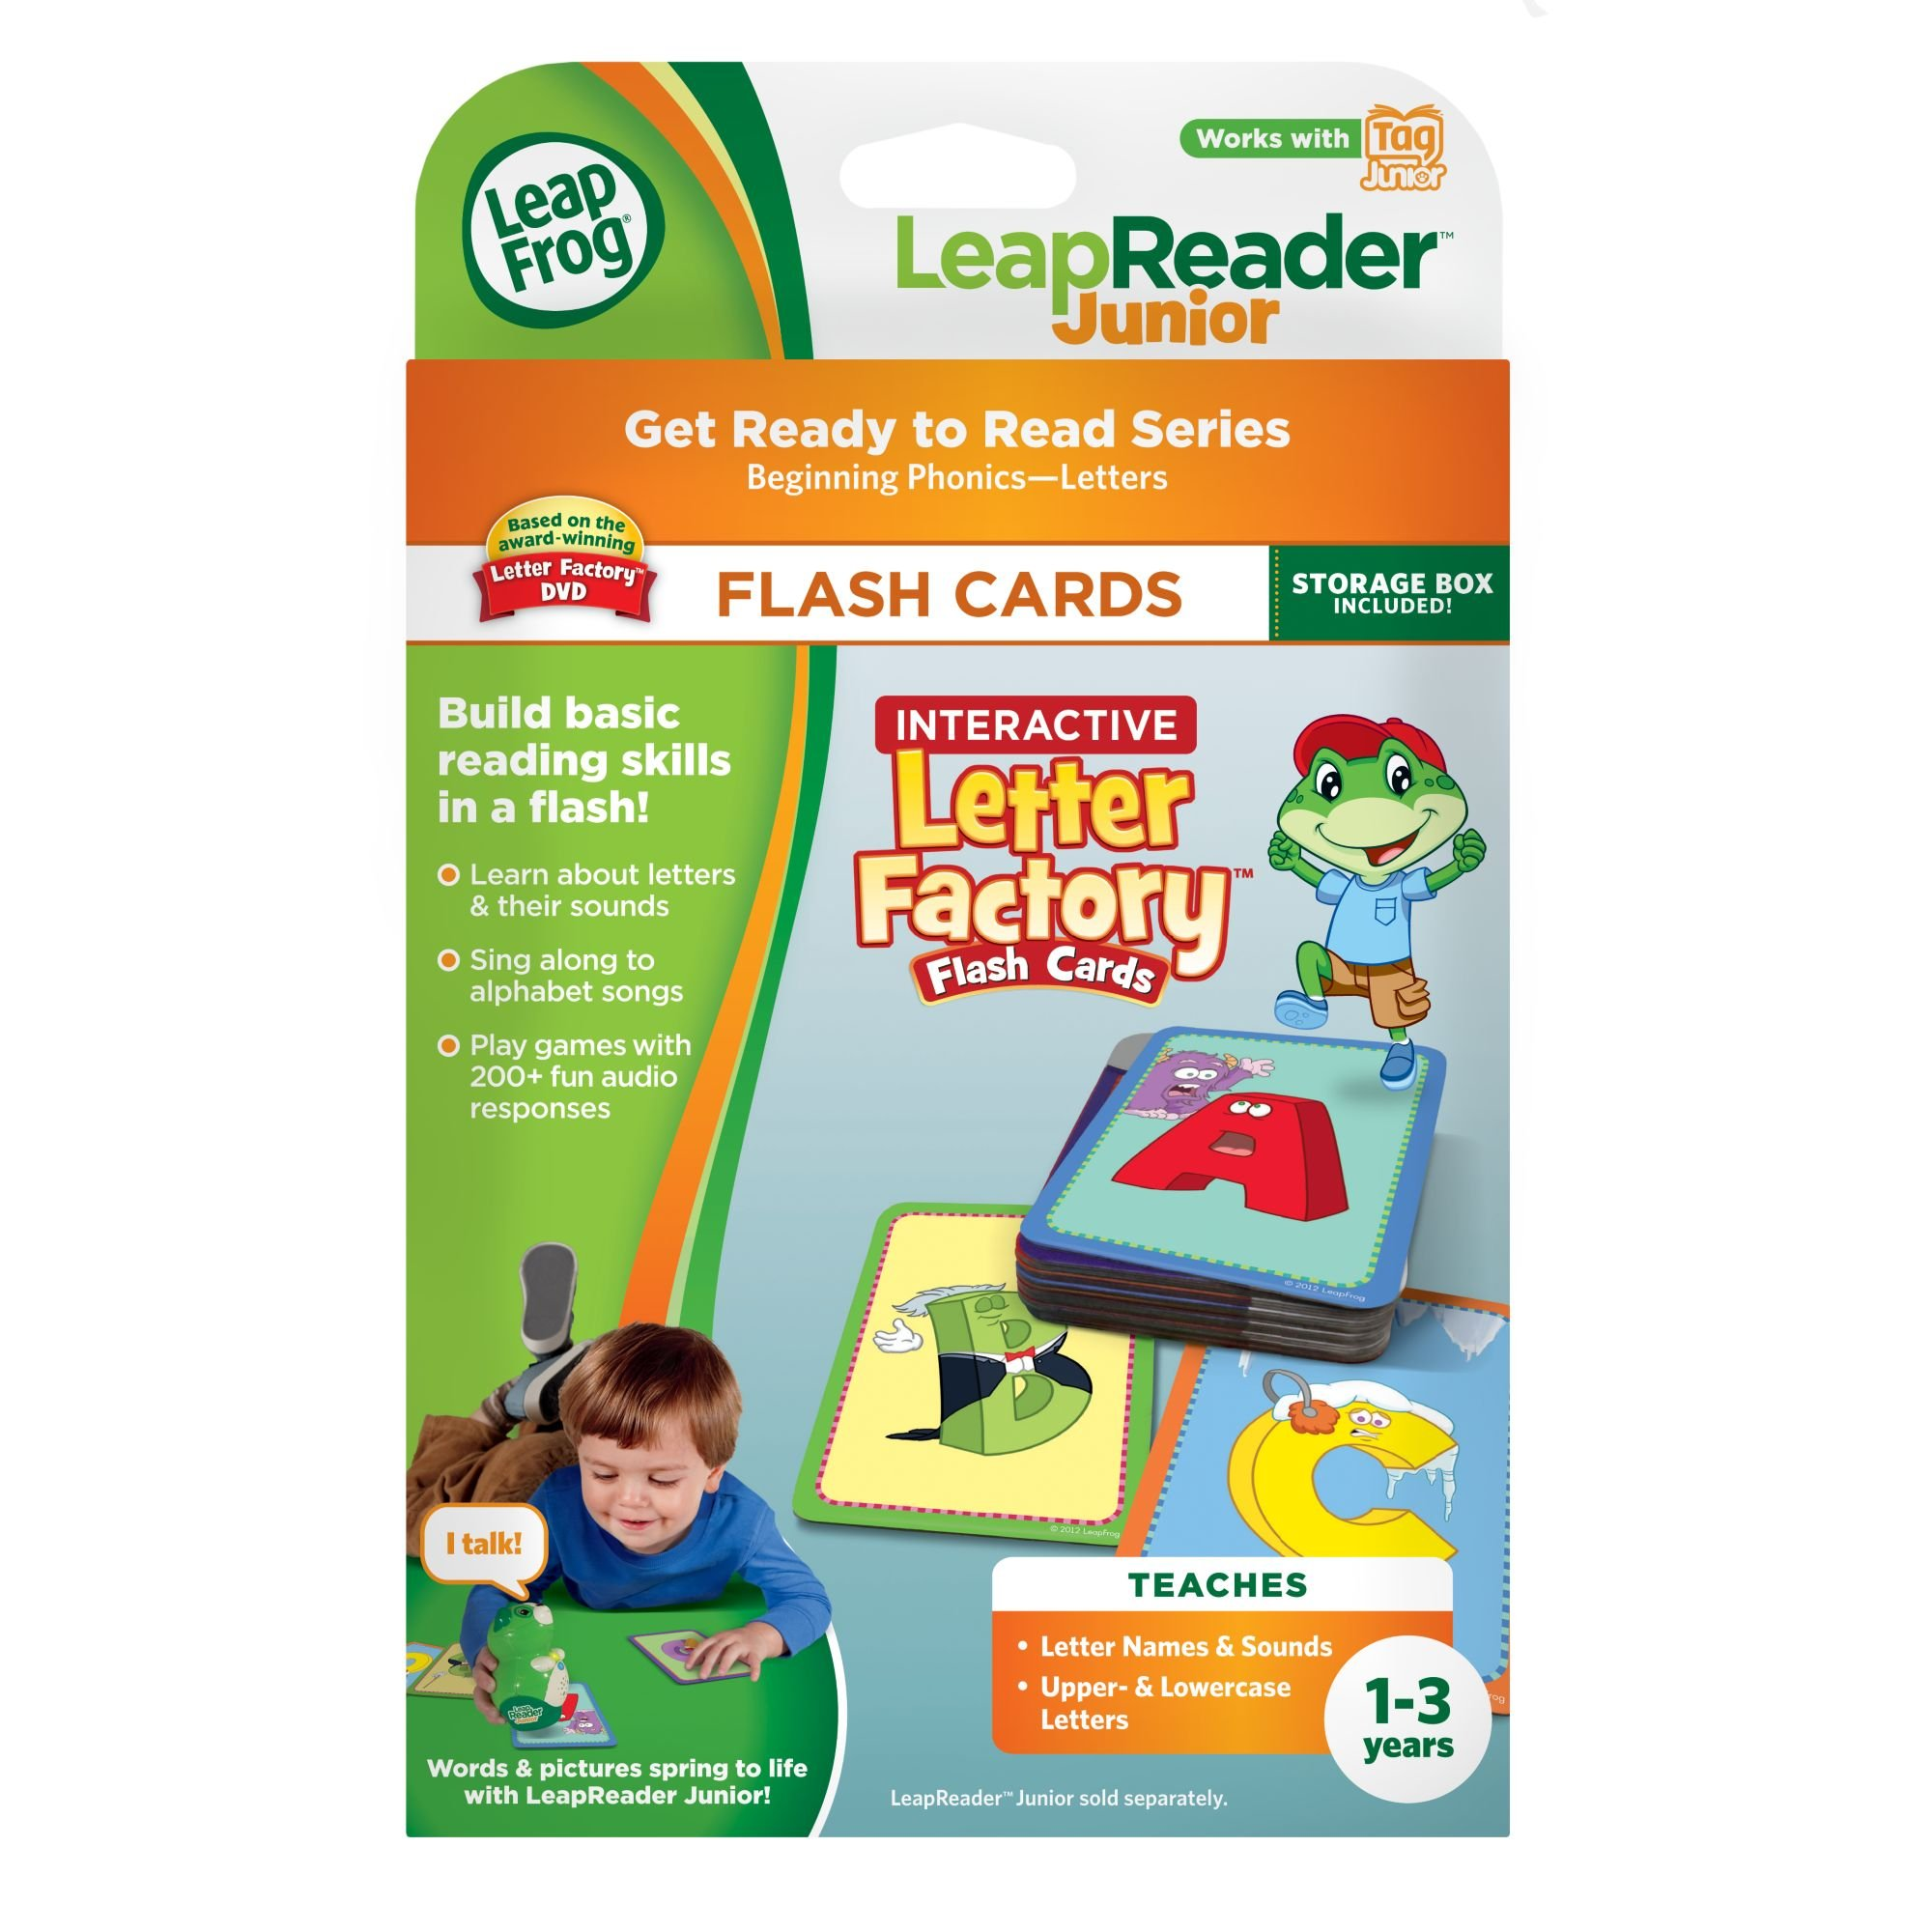 LeapFrog LeapReader Junior Interactive Letter Factory Flash Cards (works with Tag Junior) by LeapFrog (Image #6)